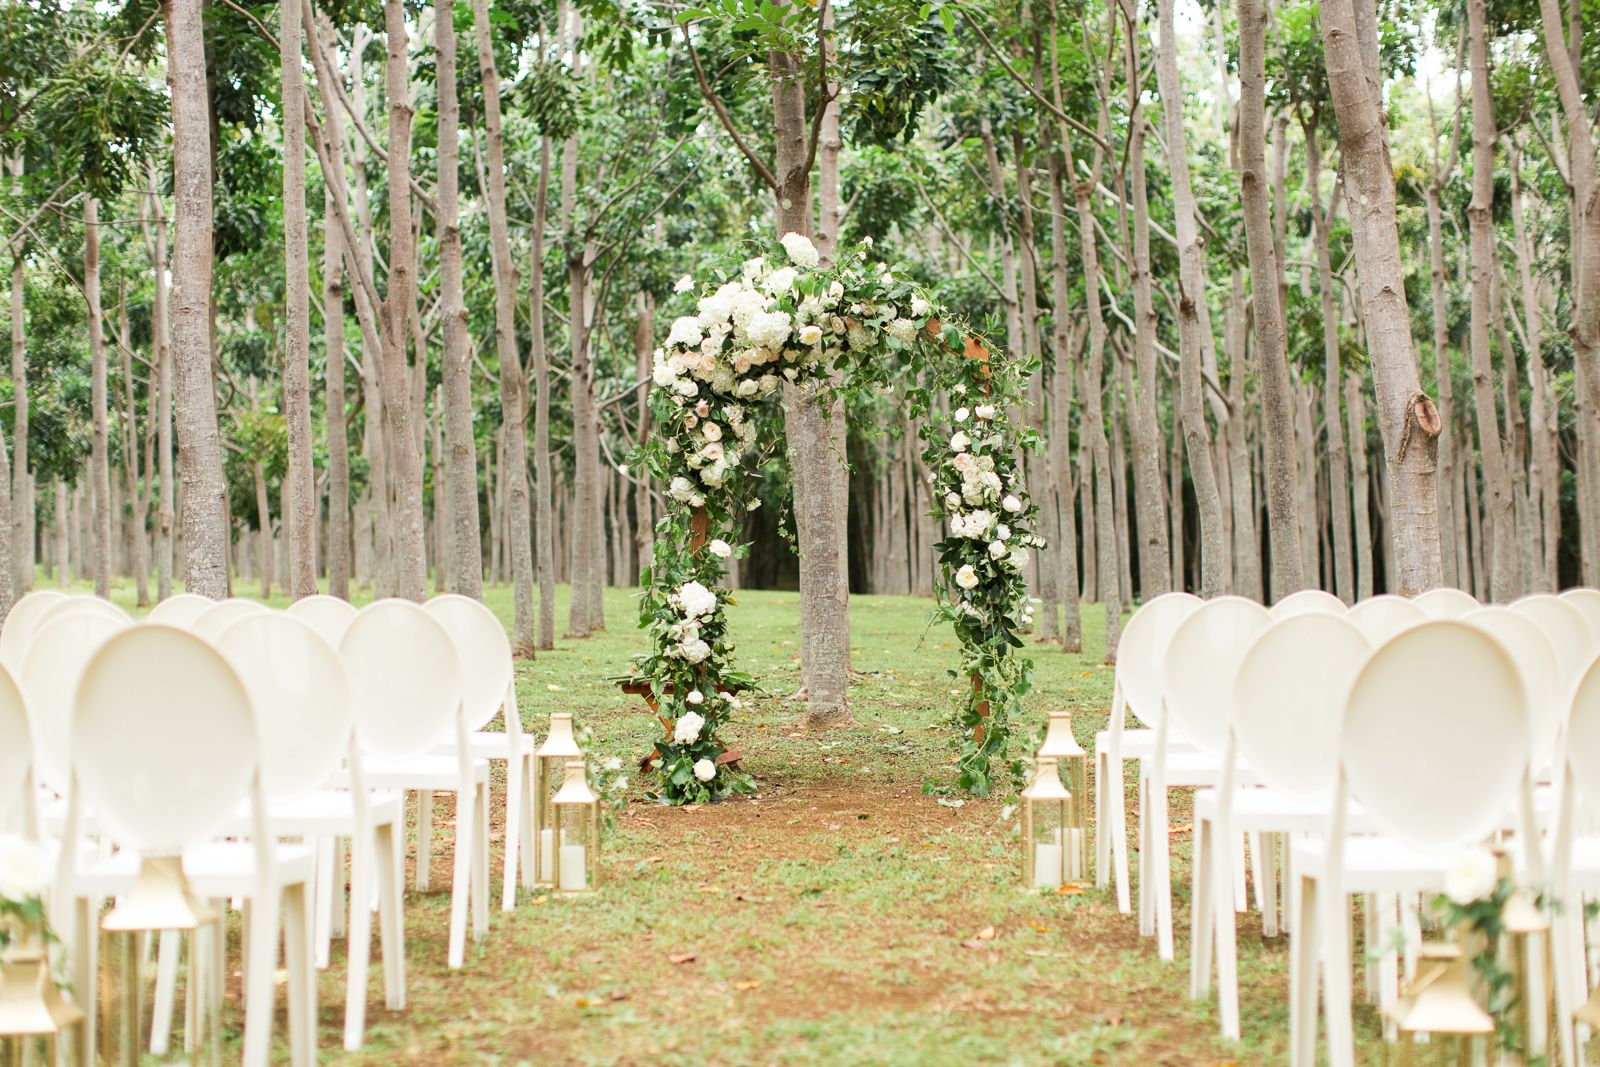 9 Outdoor Wedding Ideas - Decorations for a Fun Outside Spring